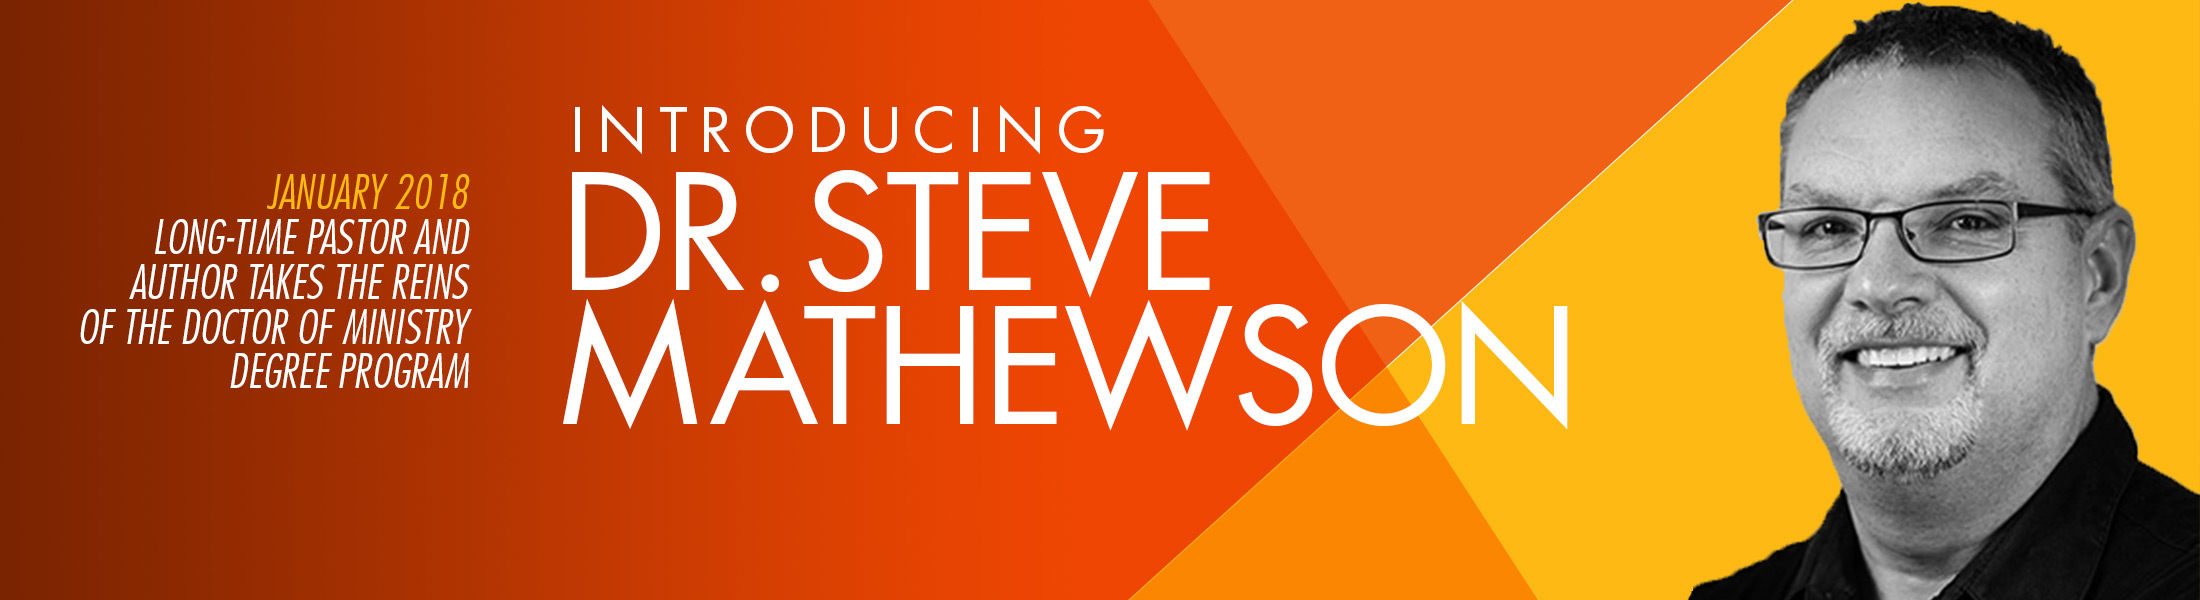 Dr. Steve Mathewson takes the reins of the Western Seminary Doctor of Ministry program